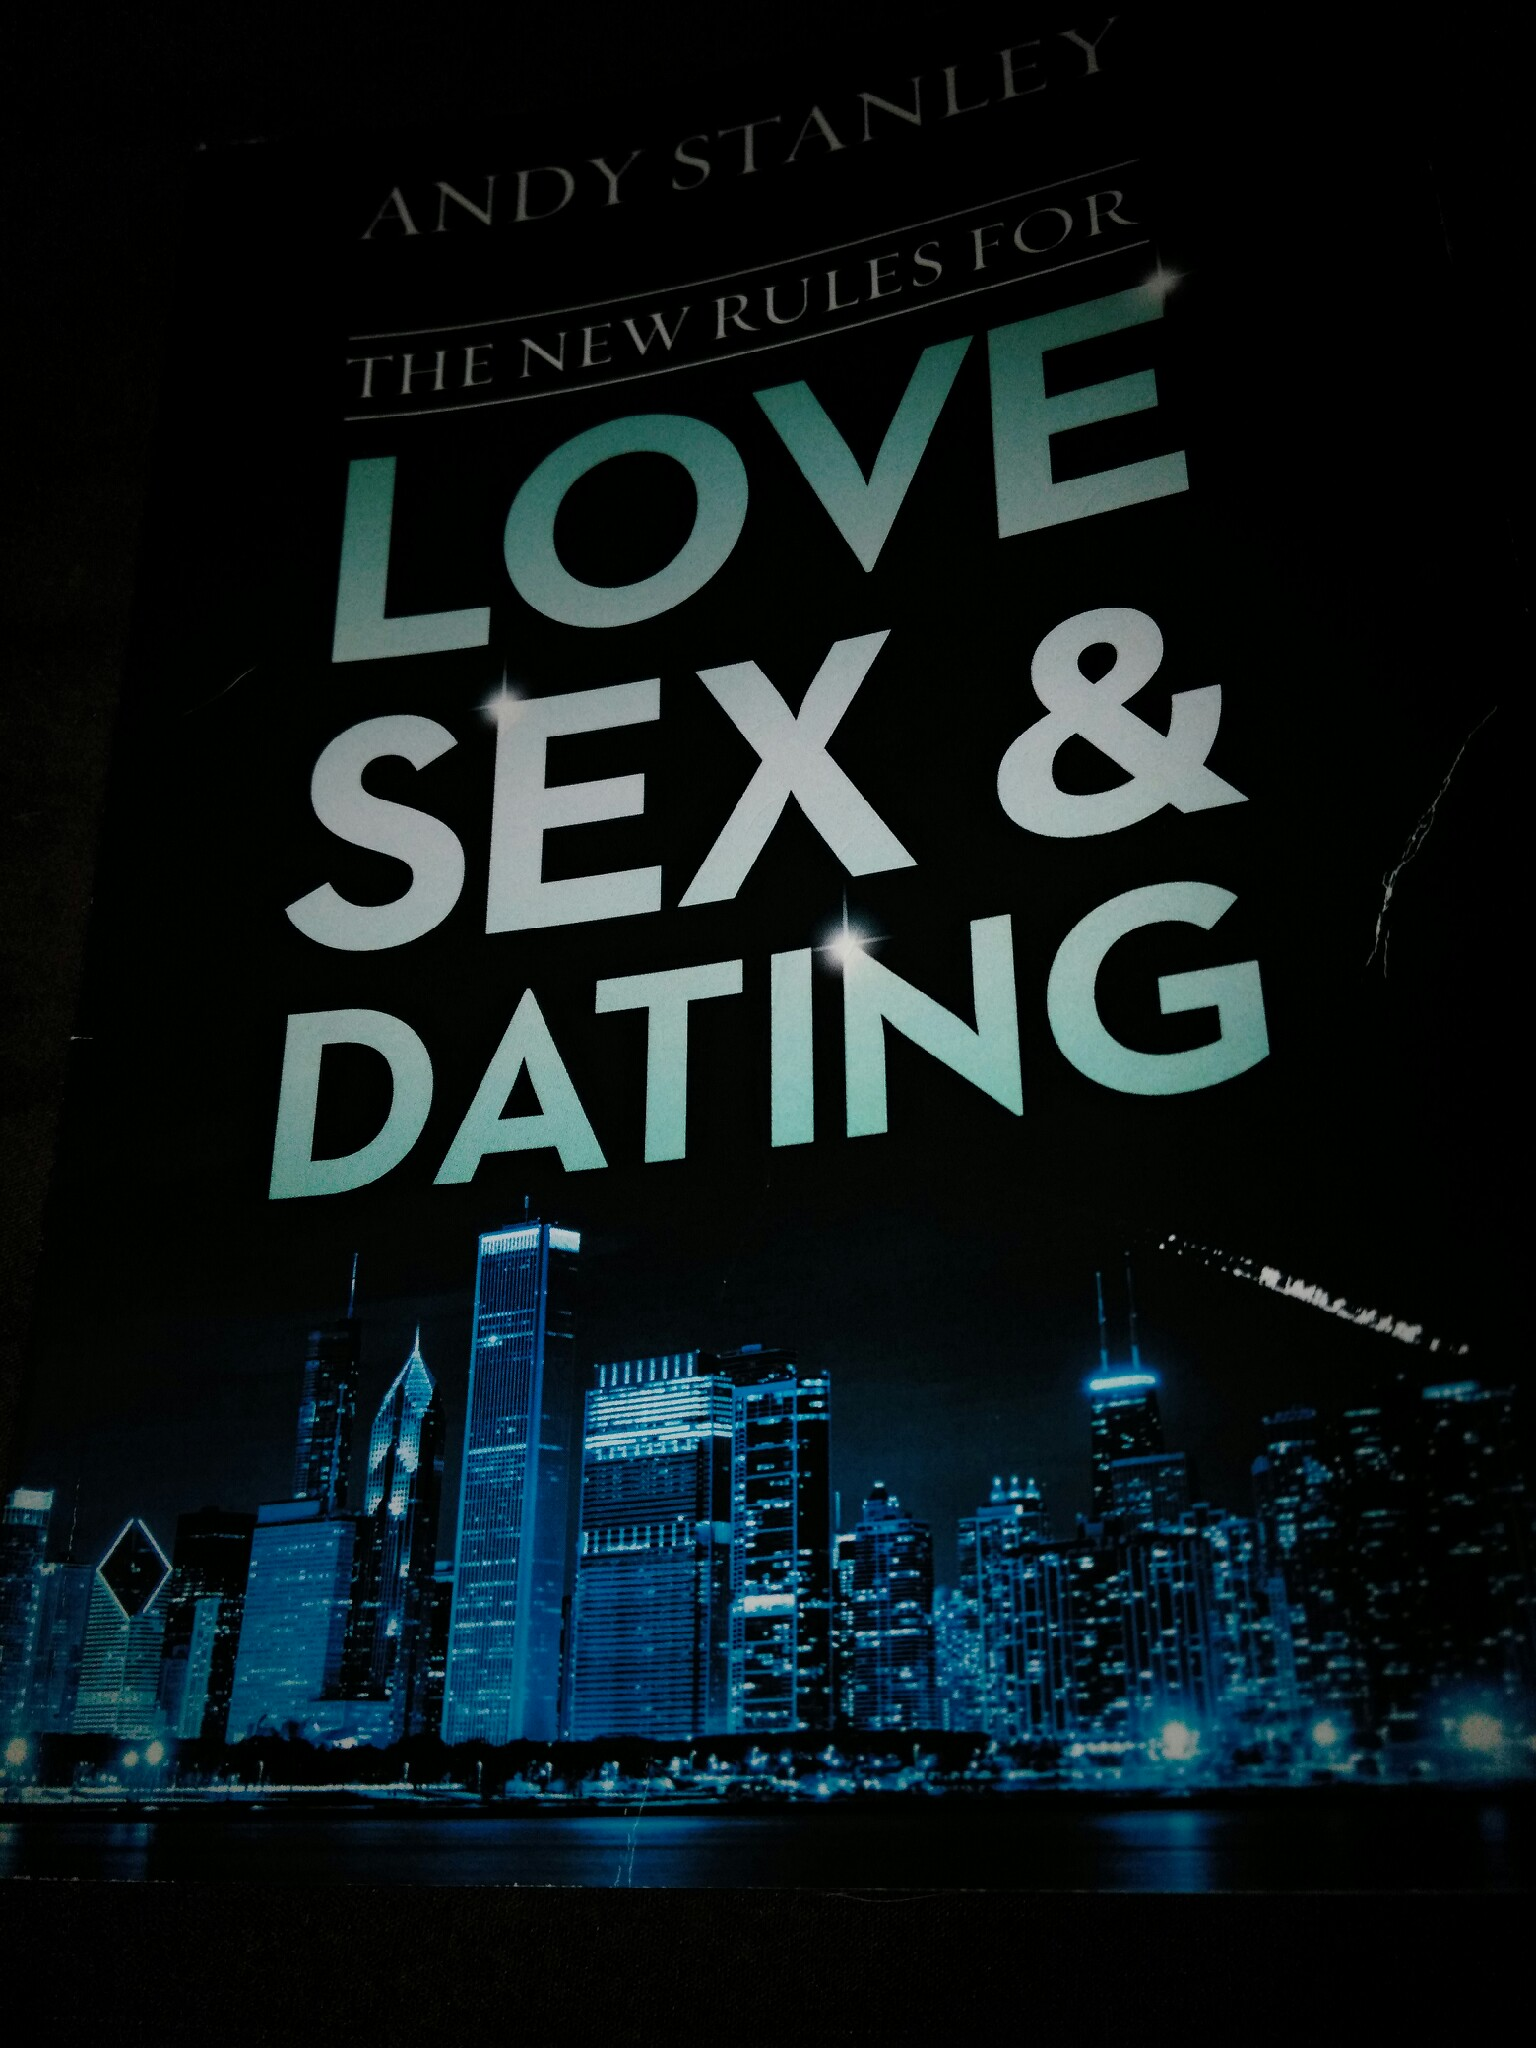 The New Rules for Love Sex and Dating by Andy Stanley